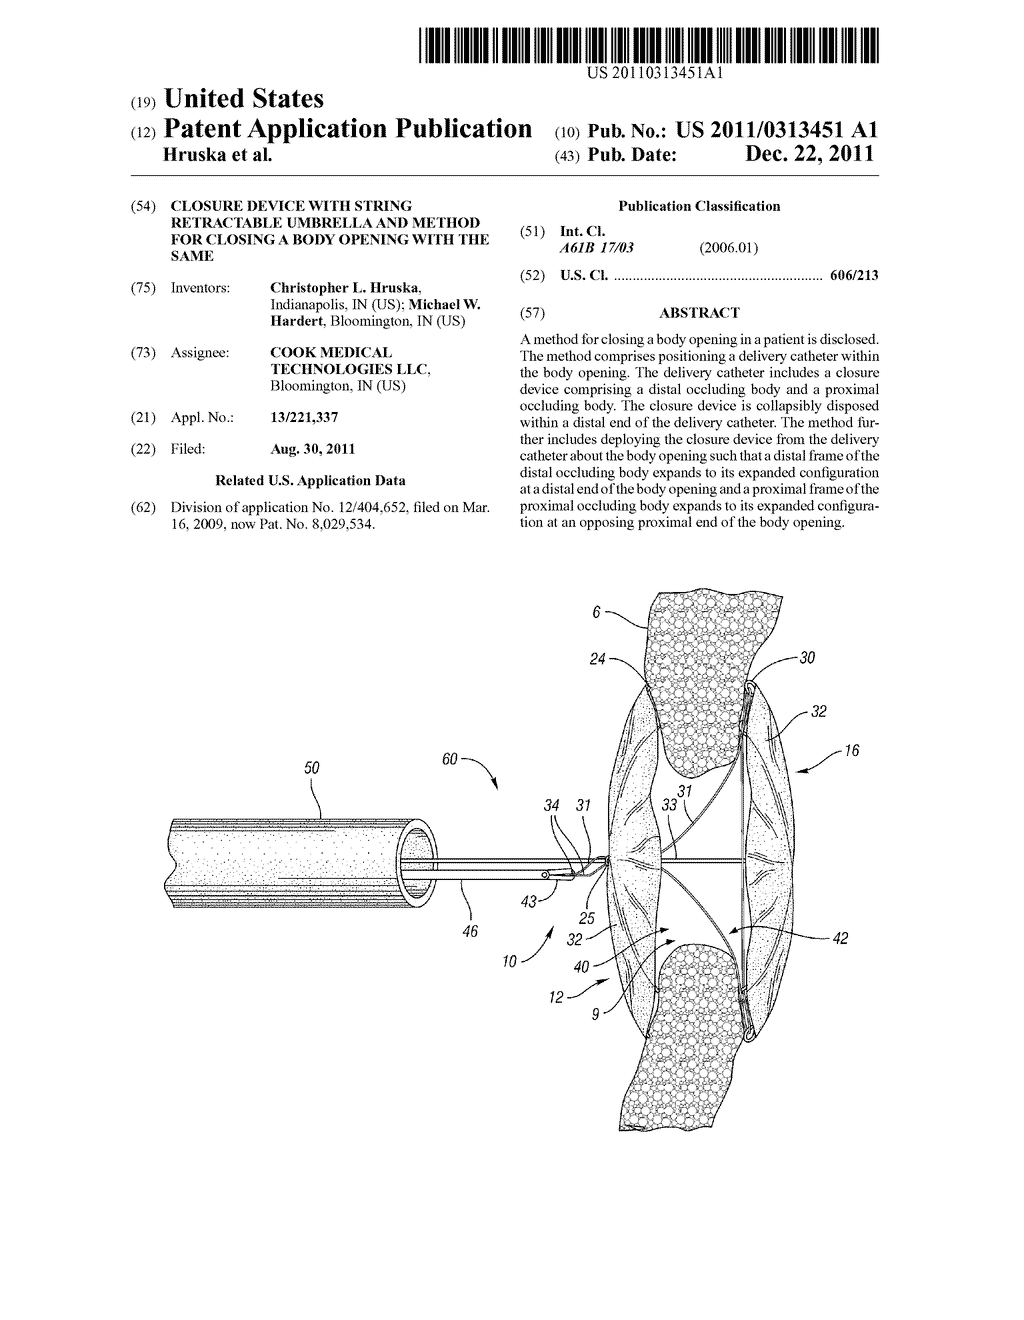 CLOSURE DEVICE WITH STRING RETRACTABLE UMBRELLA AND METHOD FOR CLOSING A     BODY OPENING WITH THE SAME - diagram, schematic, and image 01